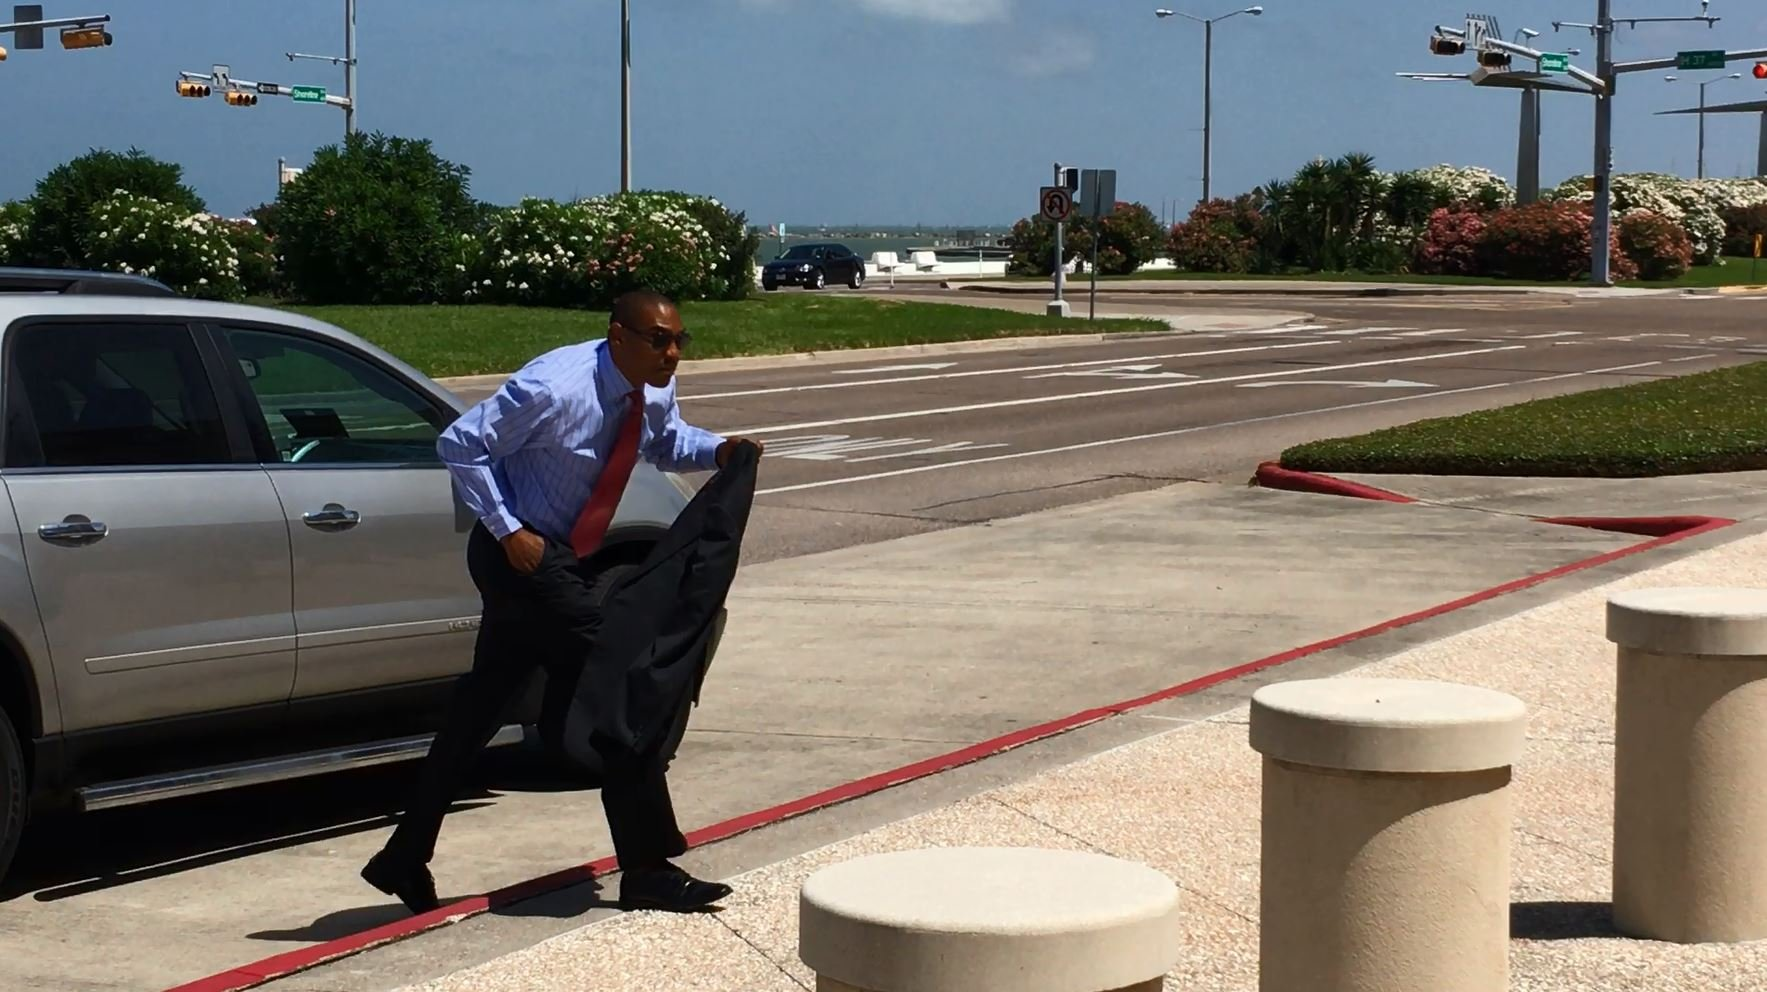 Dr. Michael Jerome Pendleton heads into federal court for sentence hearing.